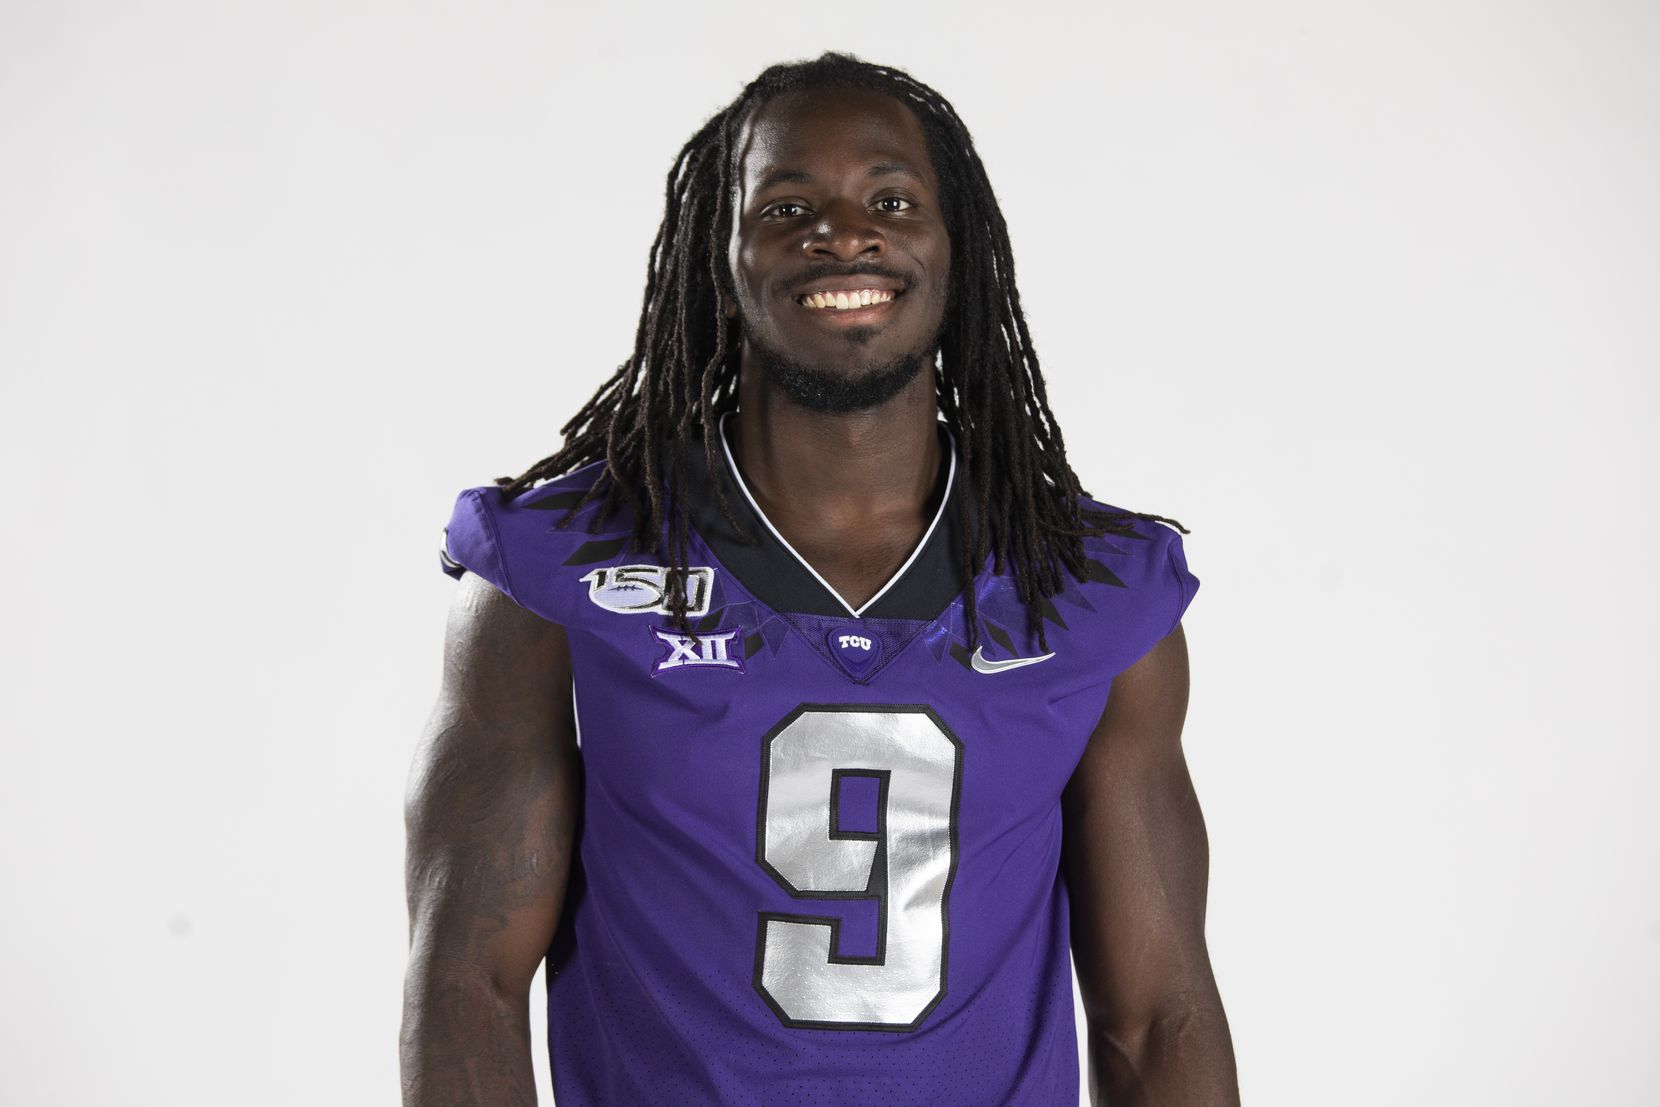 Texas Christian University Football #9 Te'Vailance Hunt photographed at TCU in Fort Worth, Texas on July 24, 2019.